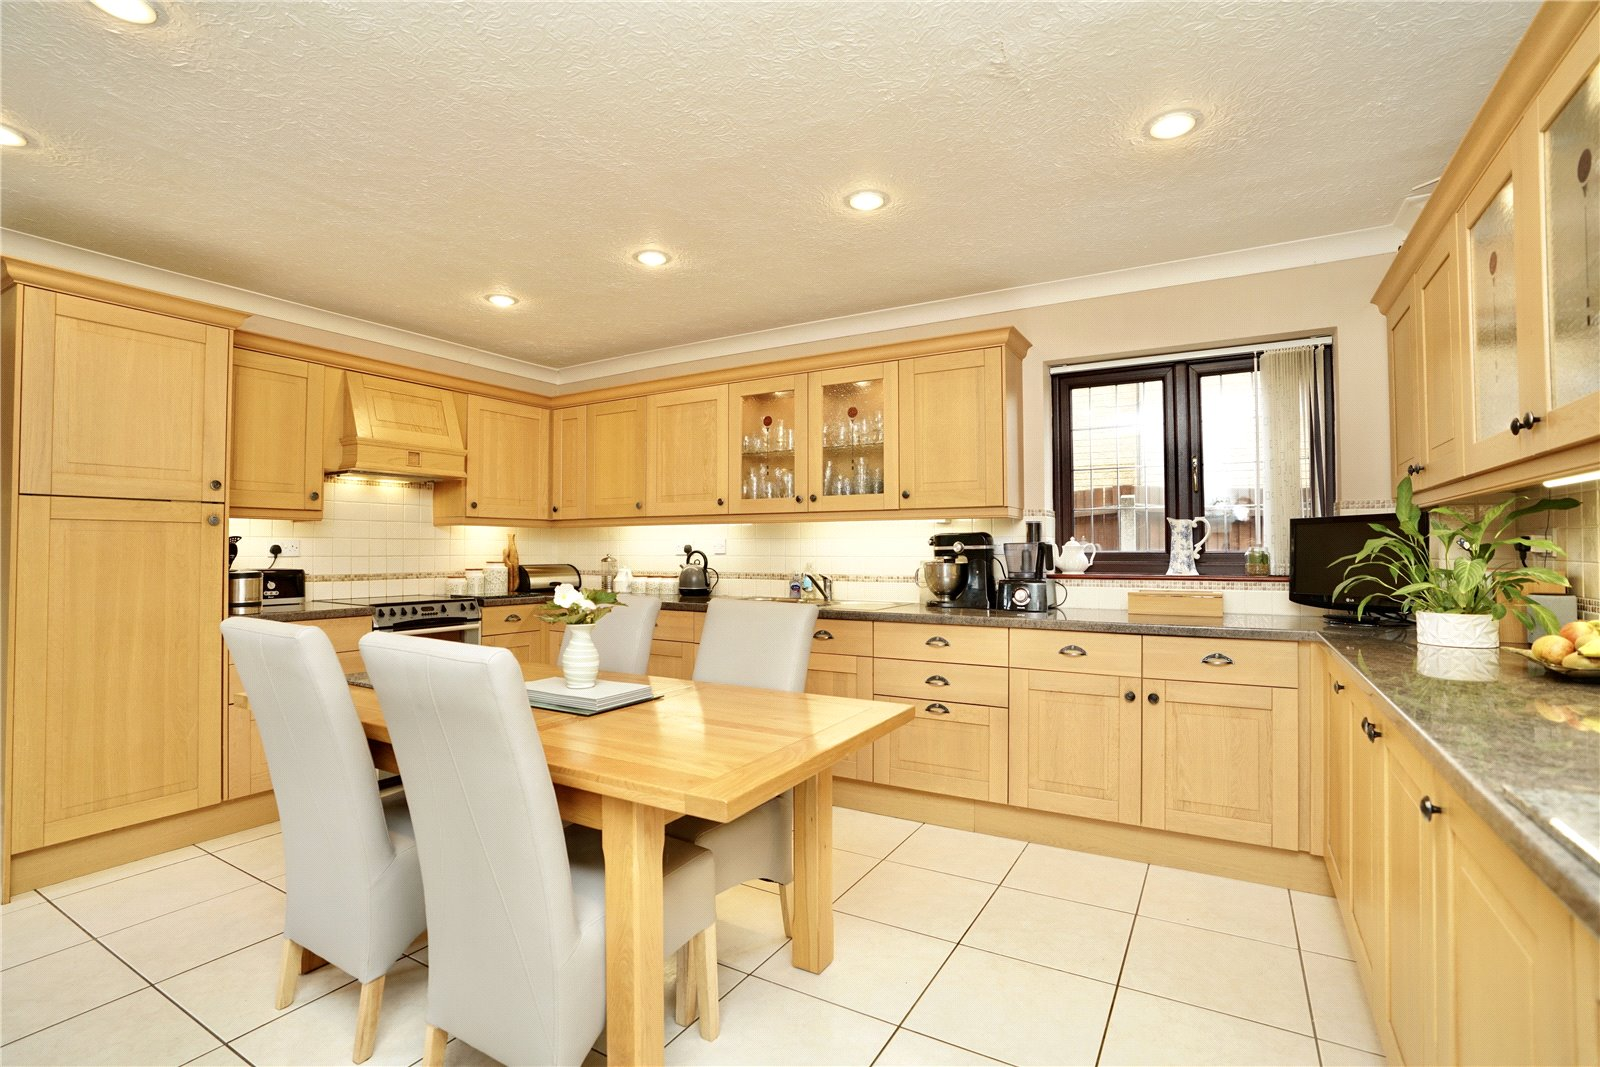 5 bed house for sale in Great North Road, Eaton Ford 2